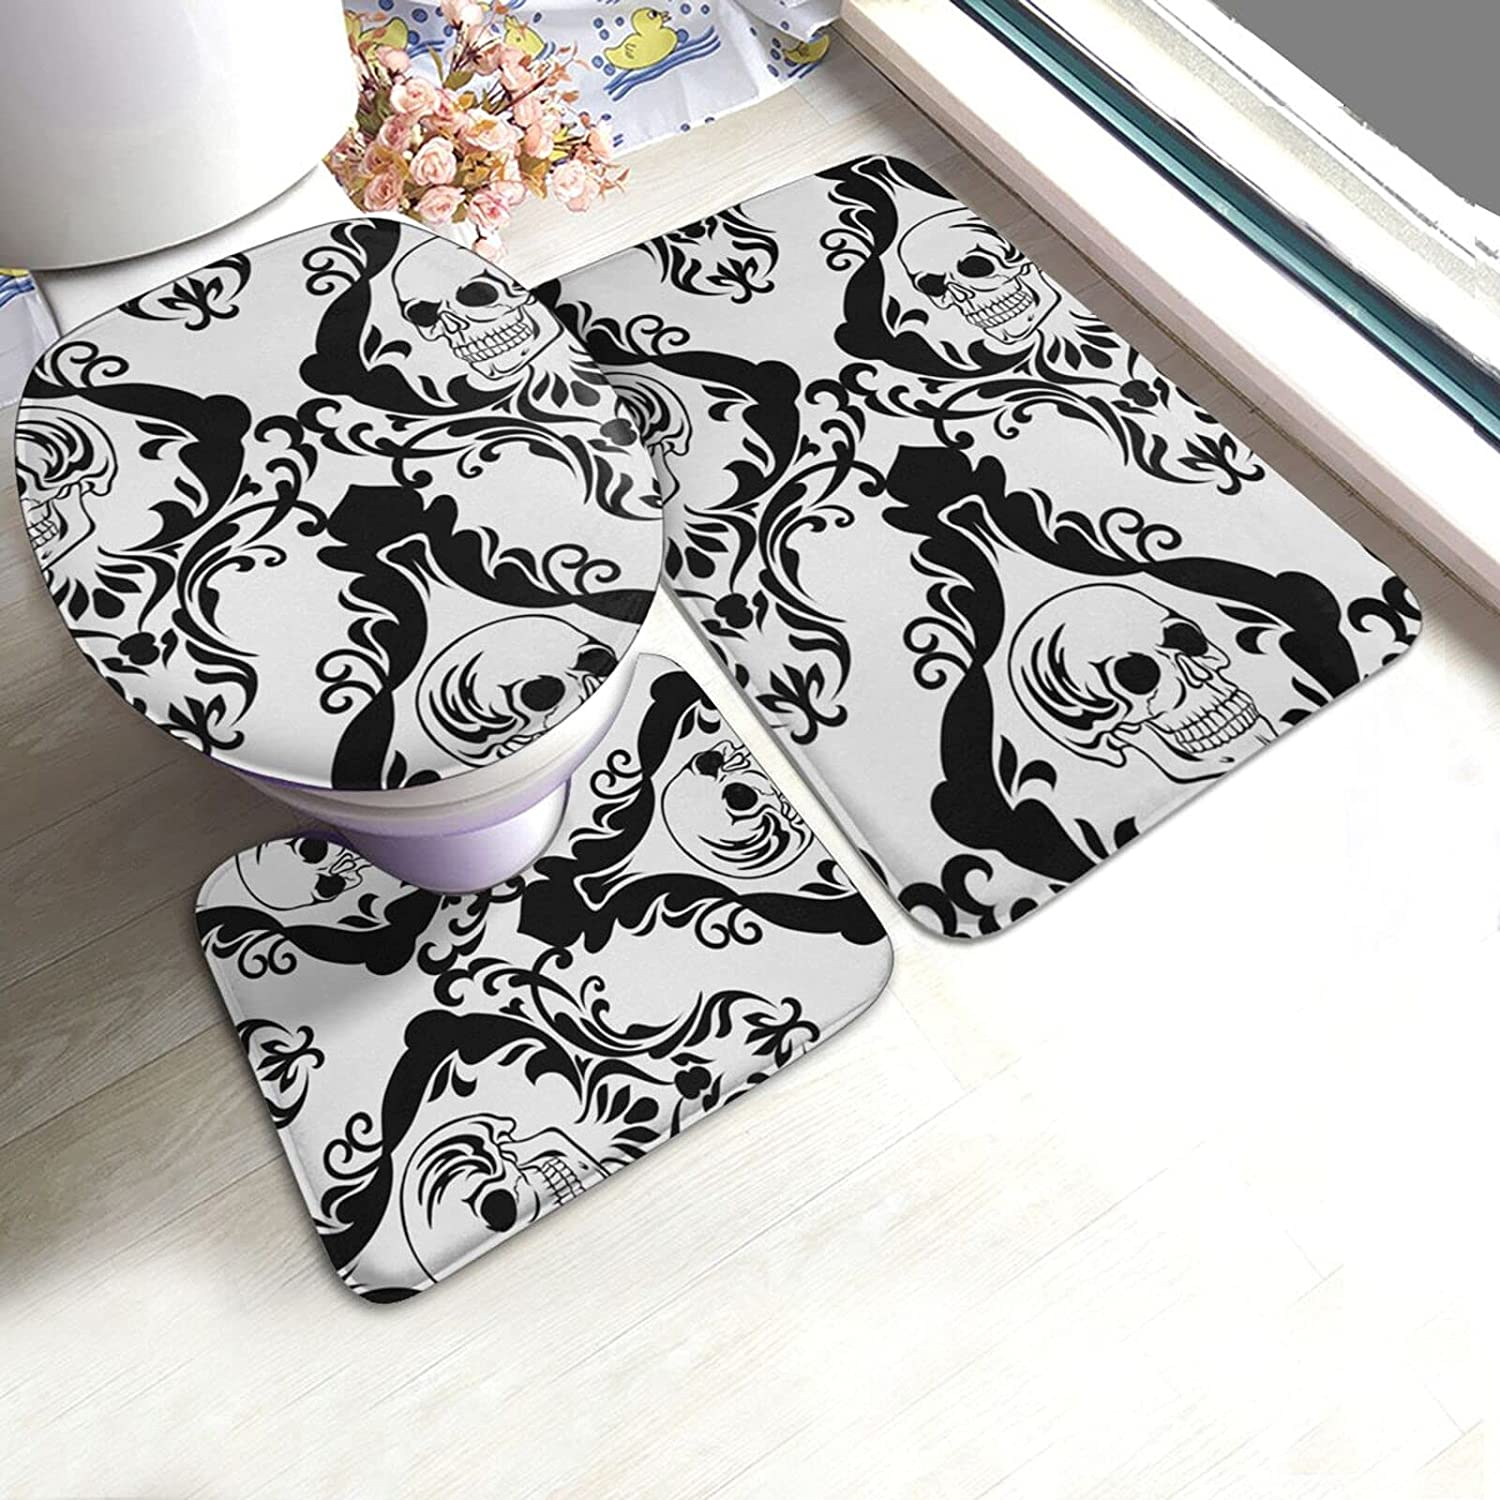 OcuteO Bathroom Year-end annual account Rugs and Mats Sets 3 Piece Max 68% OFF Vector for Skull Tatt